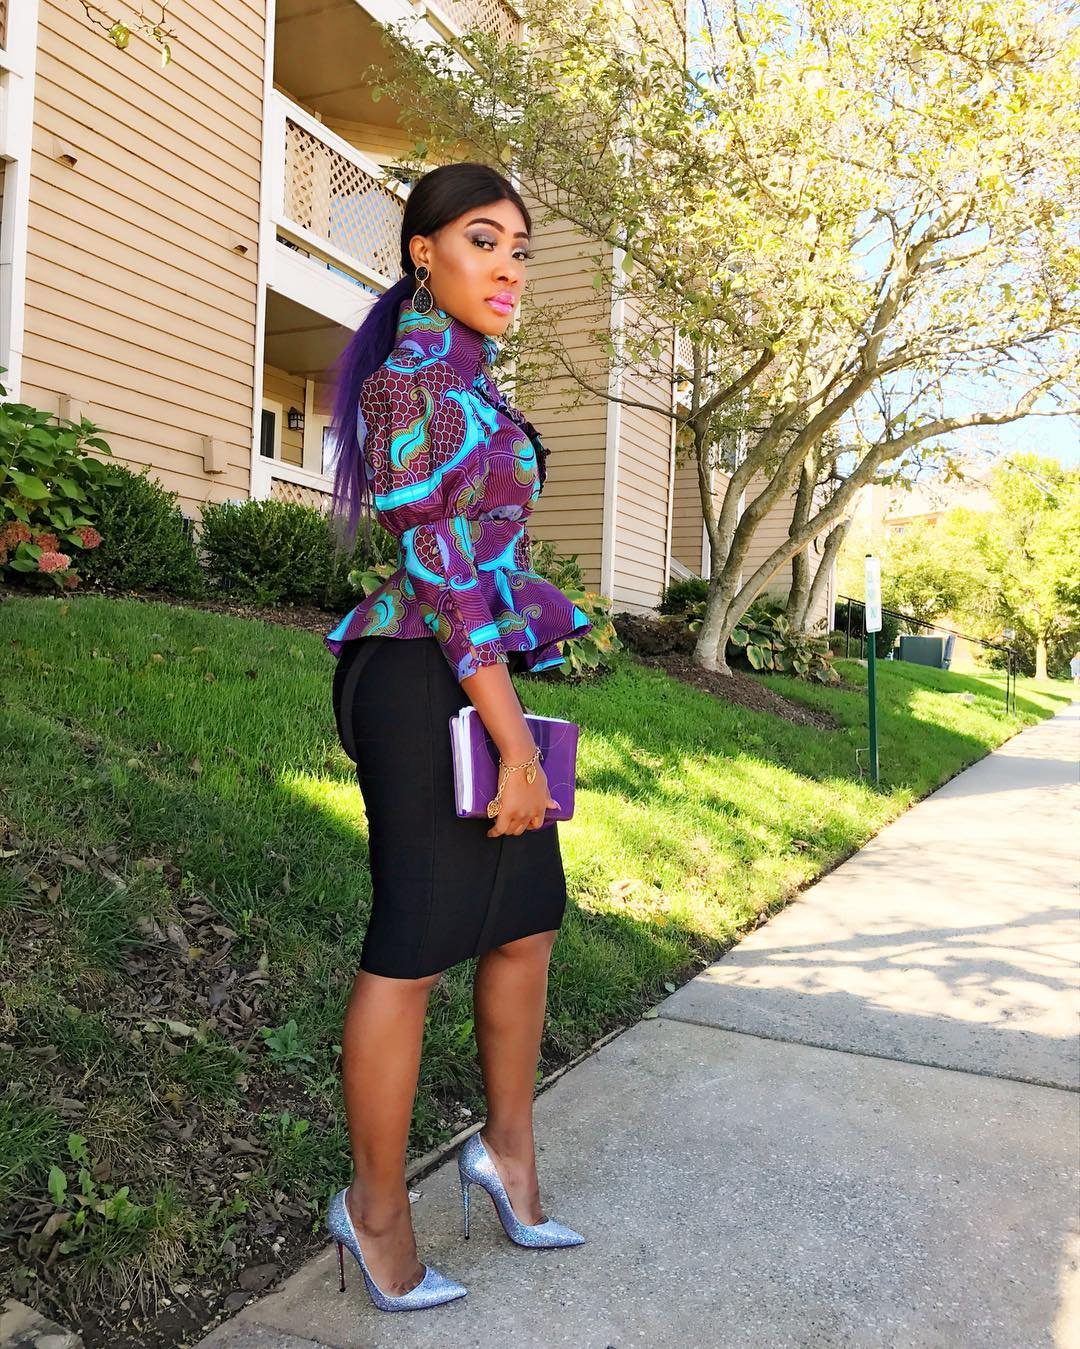 ankara-street-style-of-the-day-jojo-charry